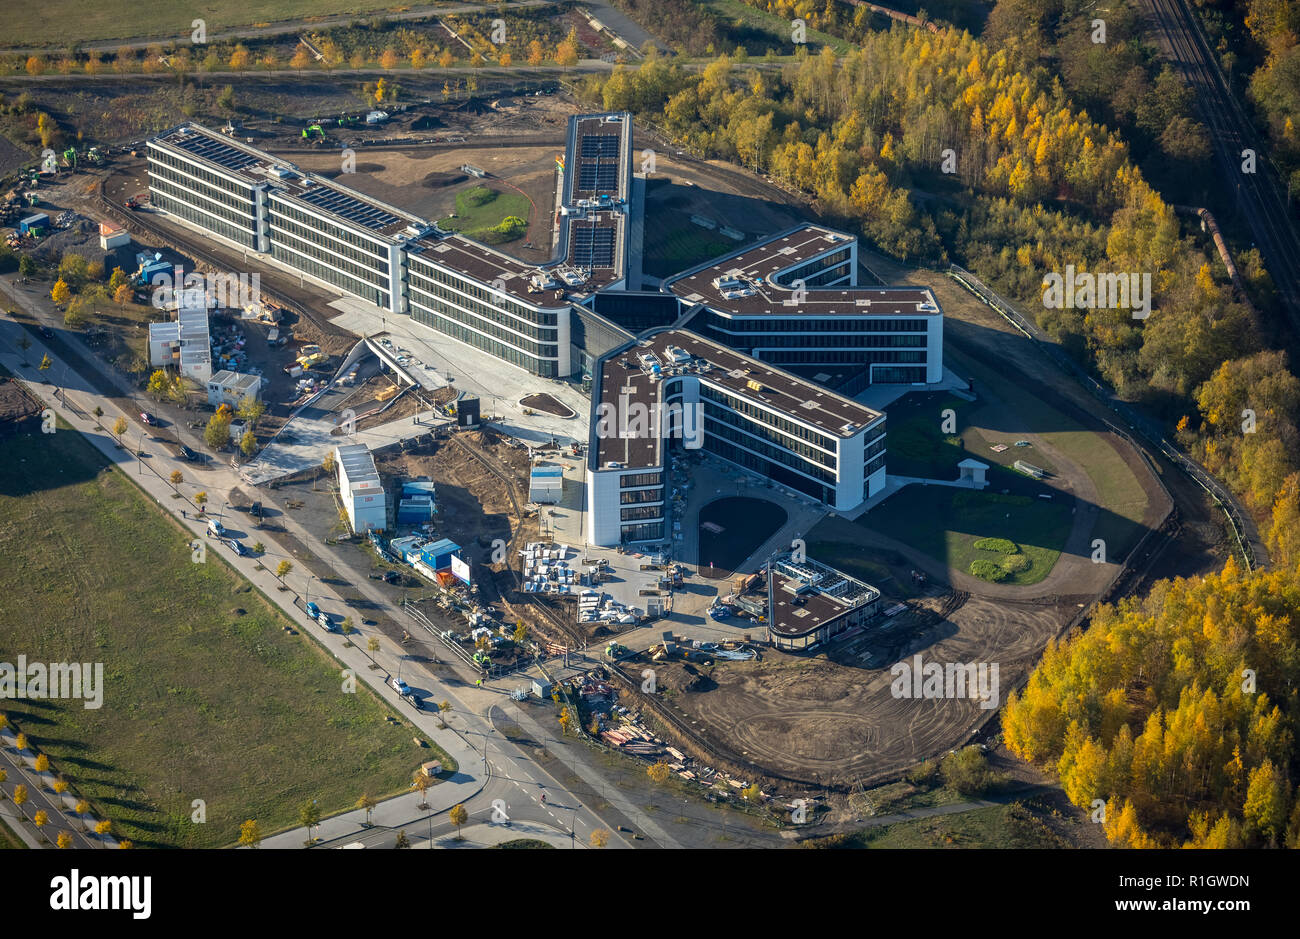 Aerial View, Amprion GmbH, based in Dortmund is a German transmission system operators, new place, new headquarters Amprion at Phoenix West, Dortmund- Stock Photo